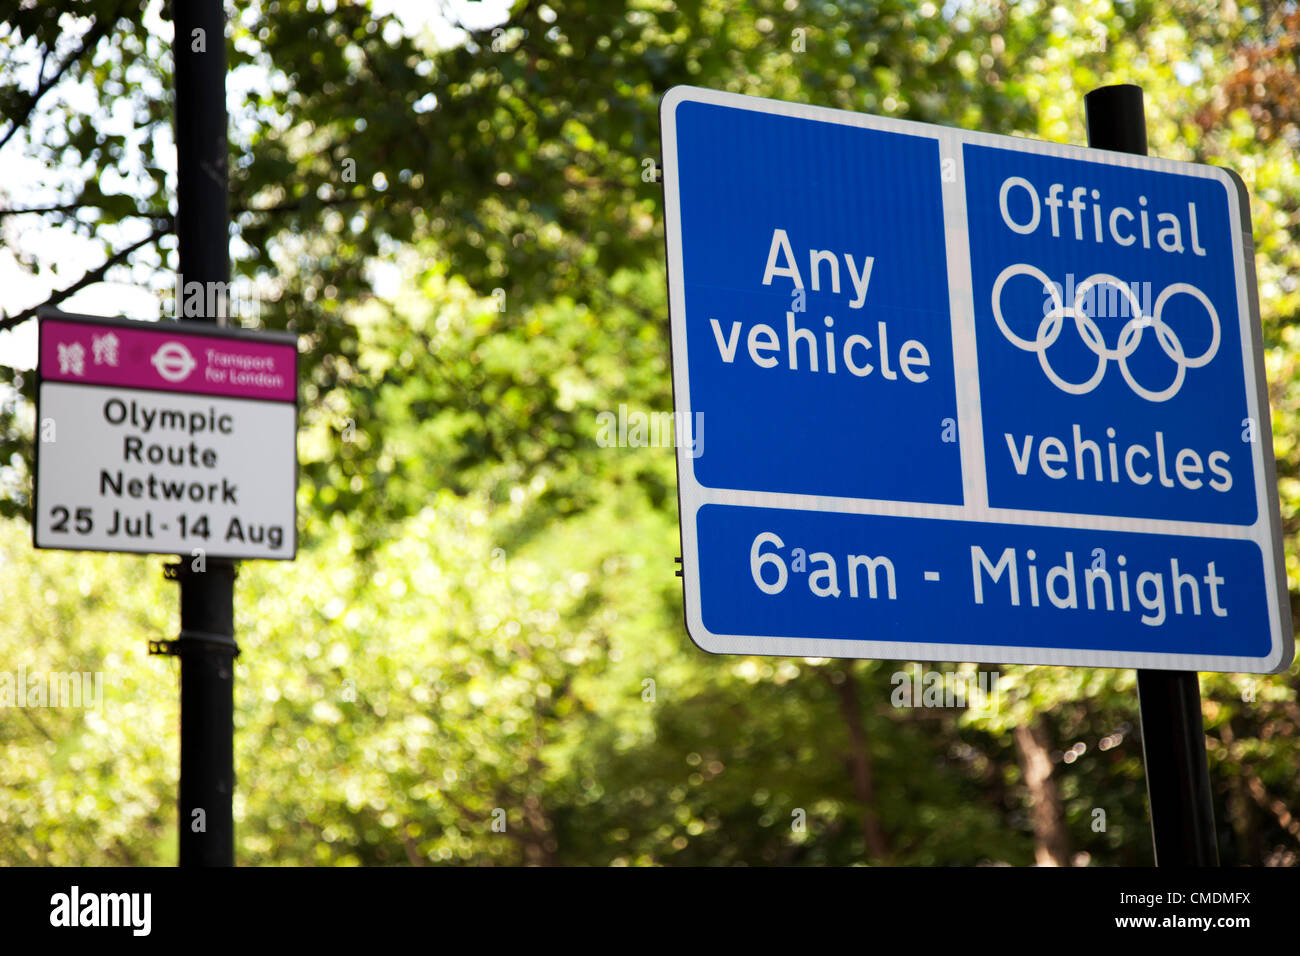 London, UK. Wednesday 25th July 2012. Games lanes signs on the Olympic Route Network. Transport is a huge issue - Stock Image